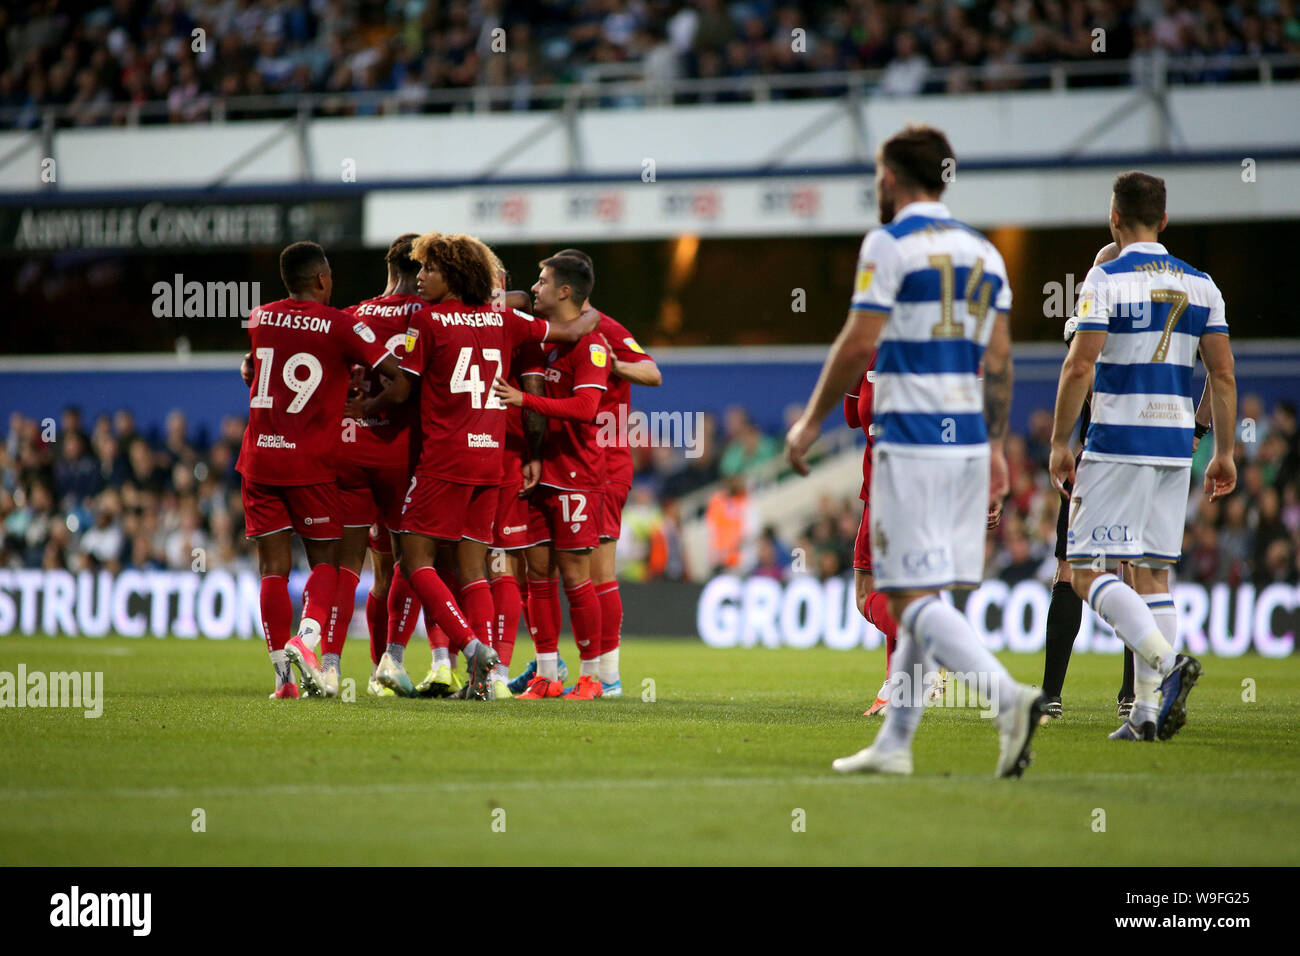 London, UK. 13th Aug, 2019. Jack Hunt of Bristol City celebrates with teammates after scoring his team's second goal during Carabao cup, EFL Cup 1st round match, Queens Park Rangers v Bristol City at The Kiyan Prince Foundation Stadium, Loftus Road in London on Tuesday 13th August 2019. this image may only be used for Editorial purposes. Editorial use only, license required for commercial use. No use in betting, games or a single club/league/player publications. pic by Tom Smeeth/Andrew Orchard sports photography/Alamy Live news Credit: Andrew Orchard sports photography/Alamy Live News Stock Photo